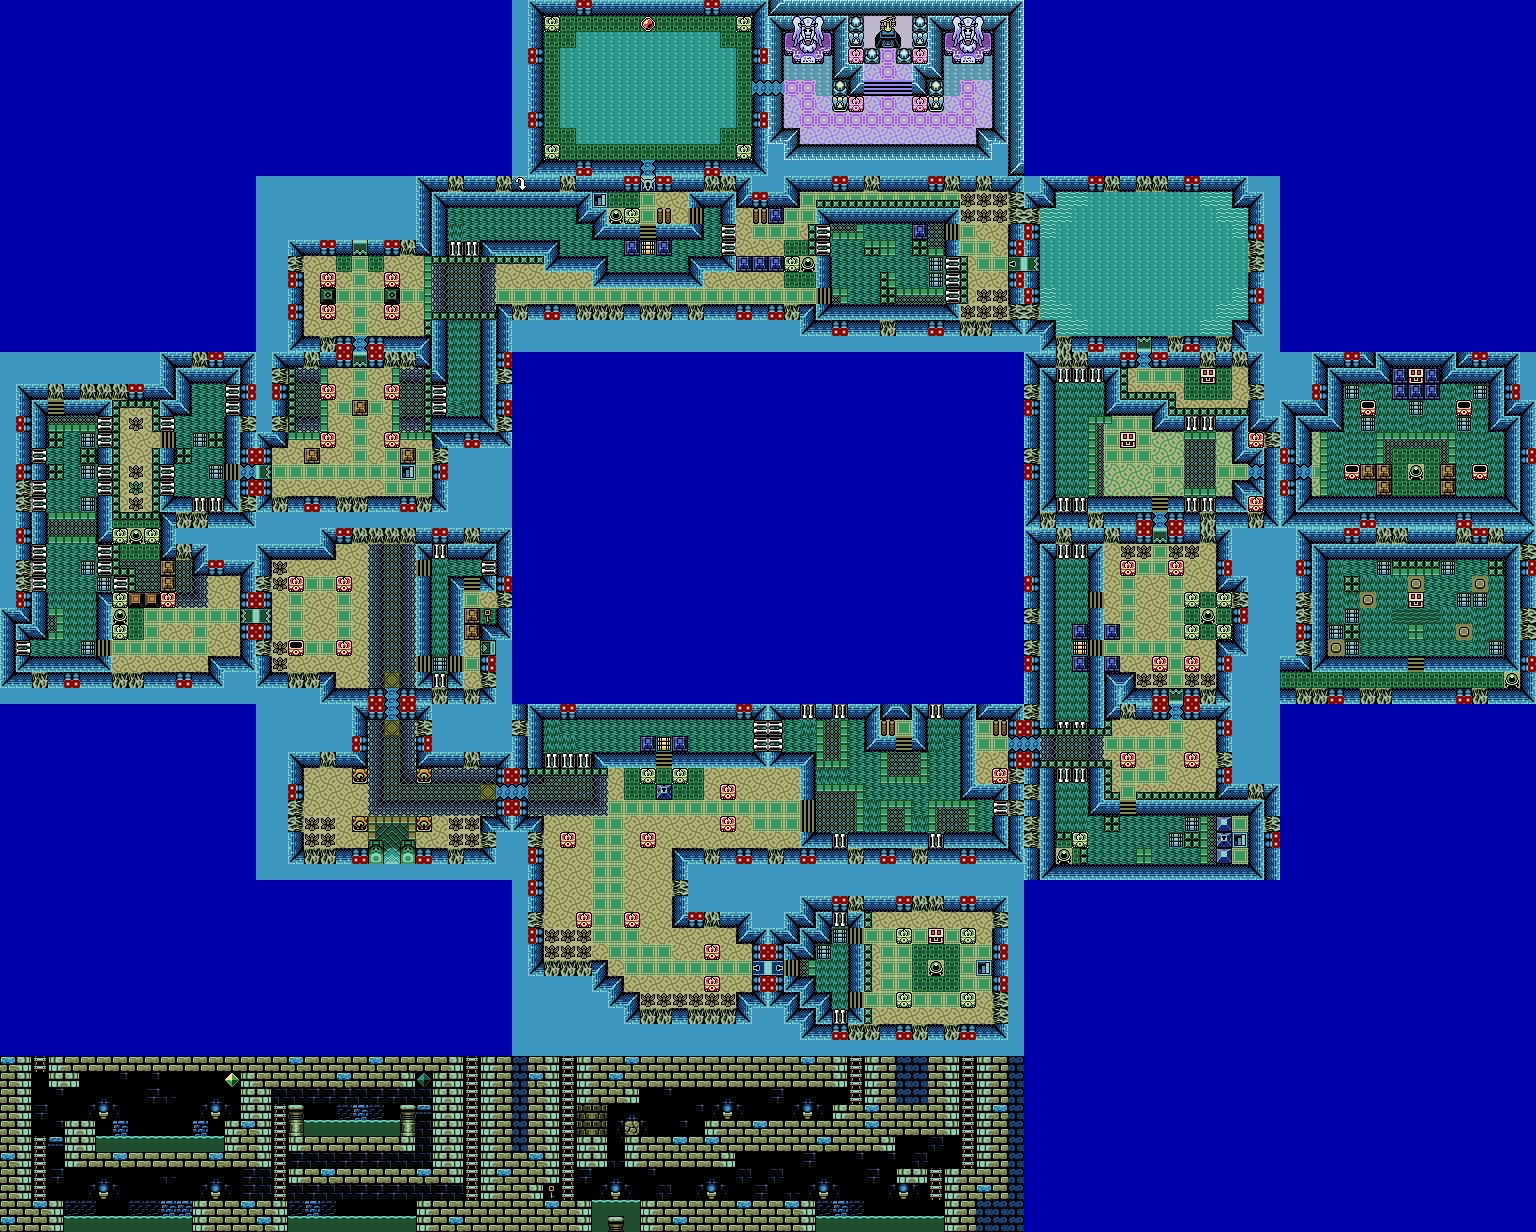 zquest_map00001.png